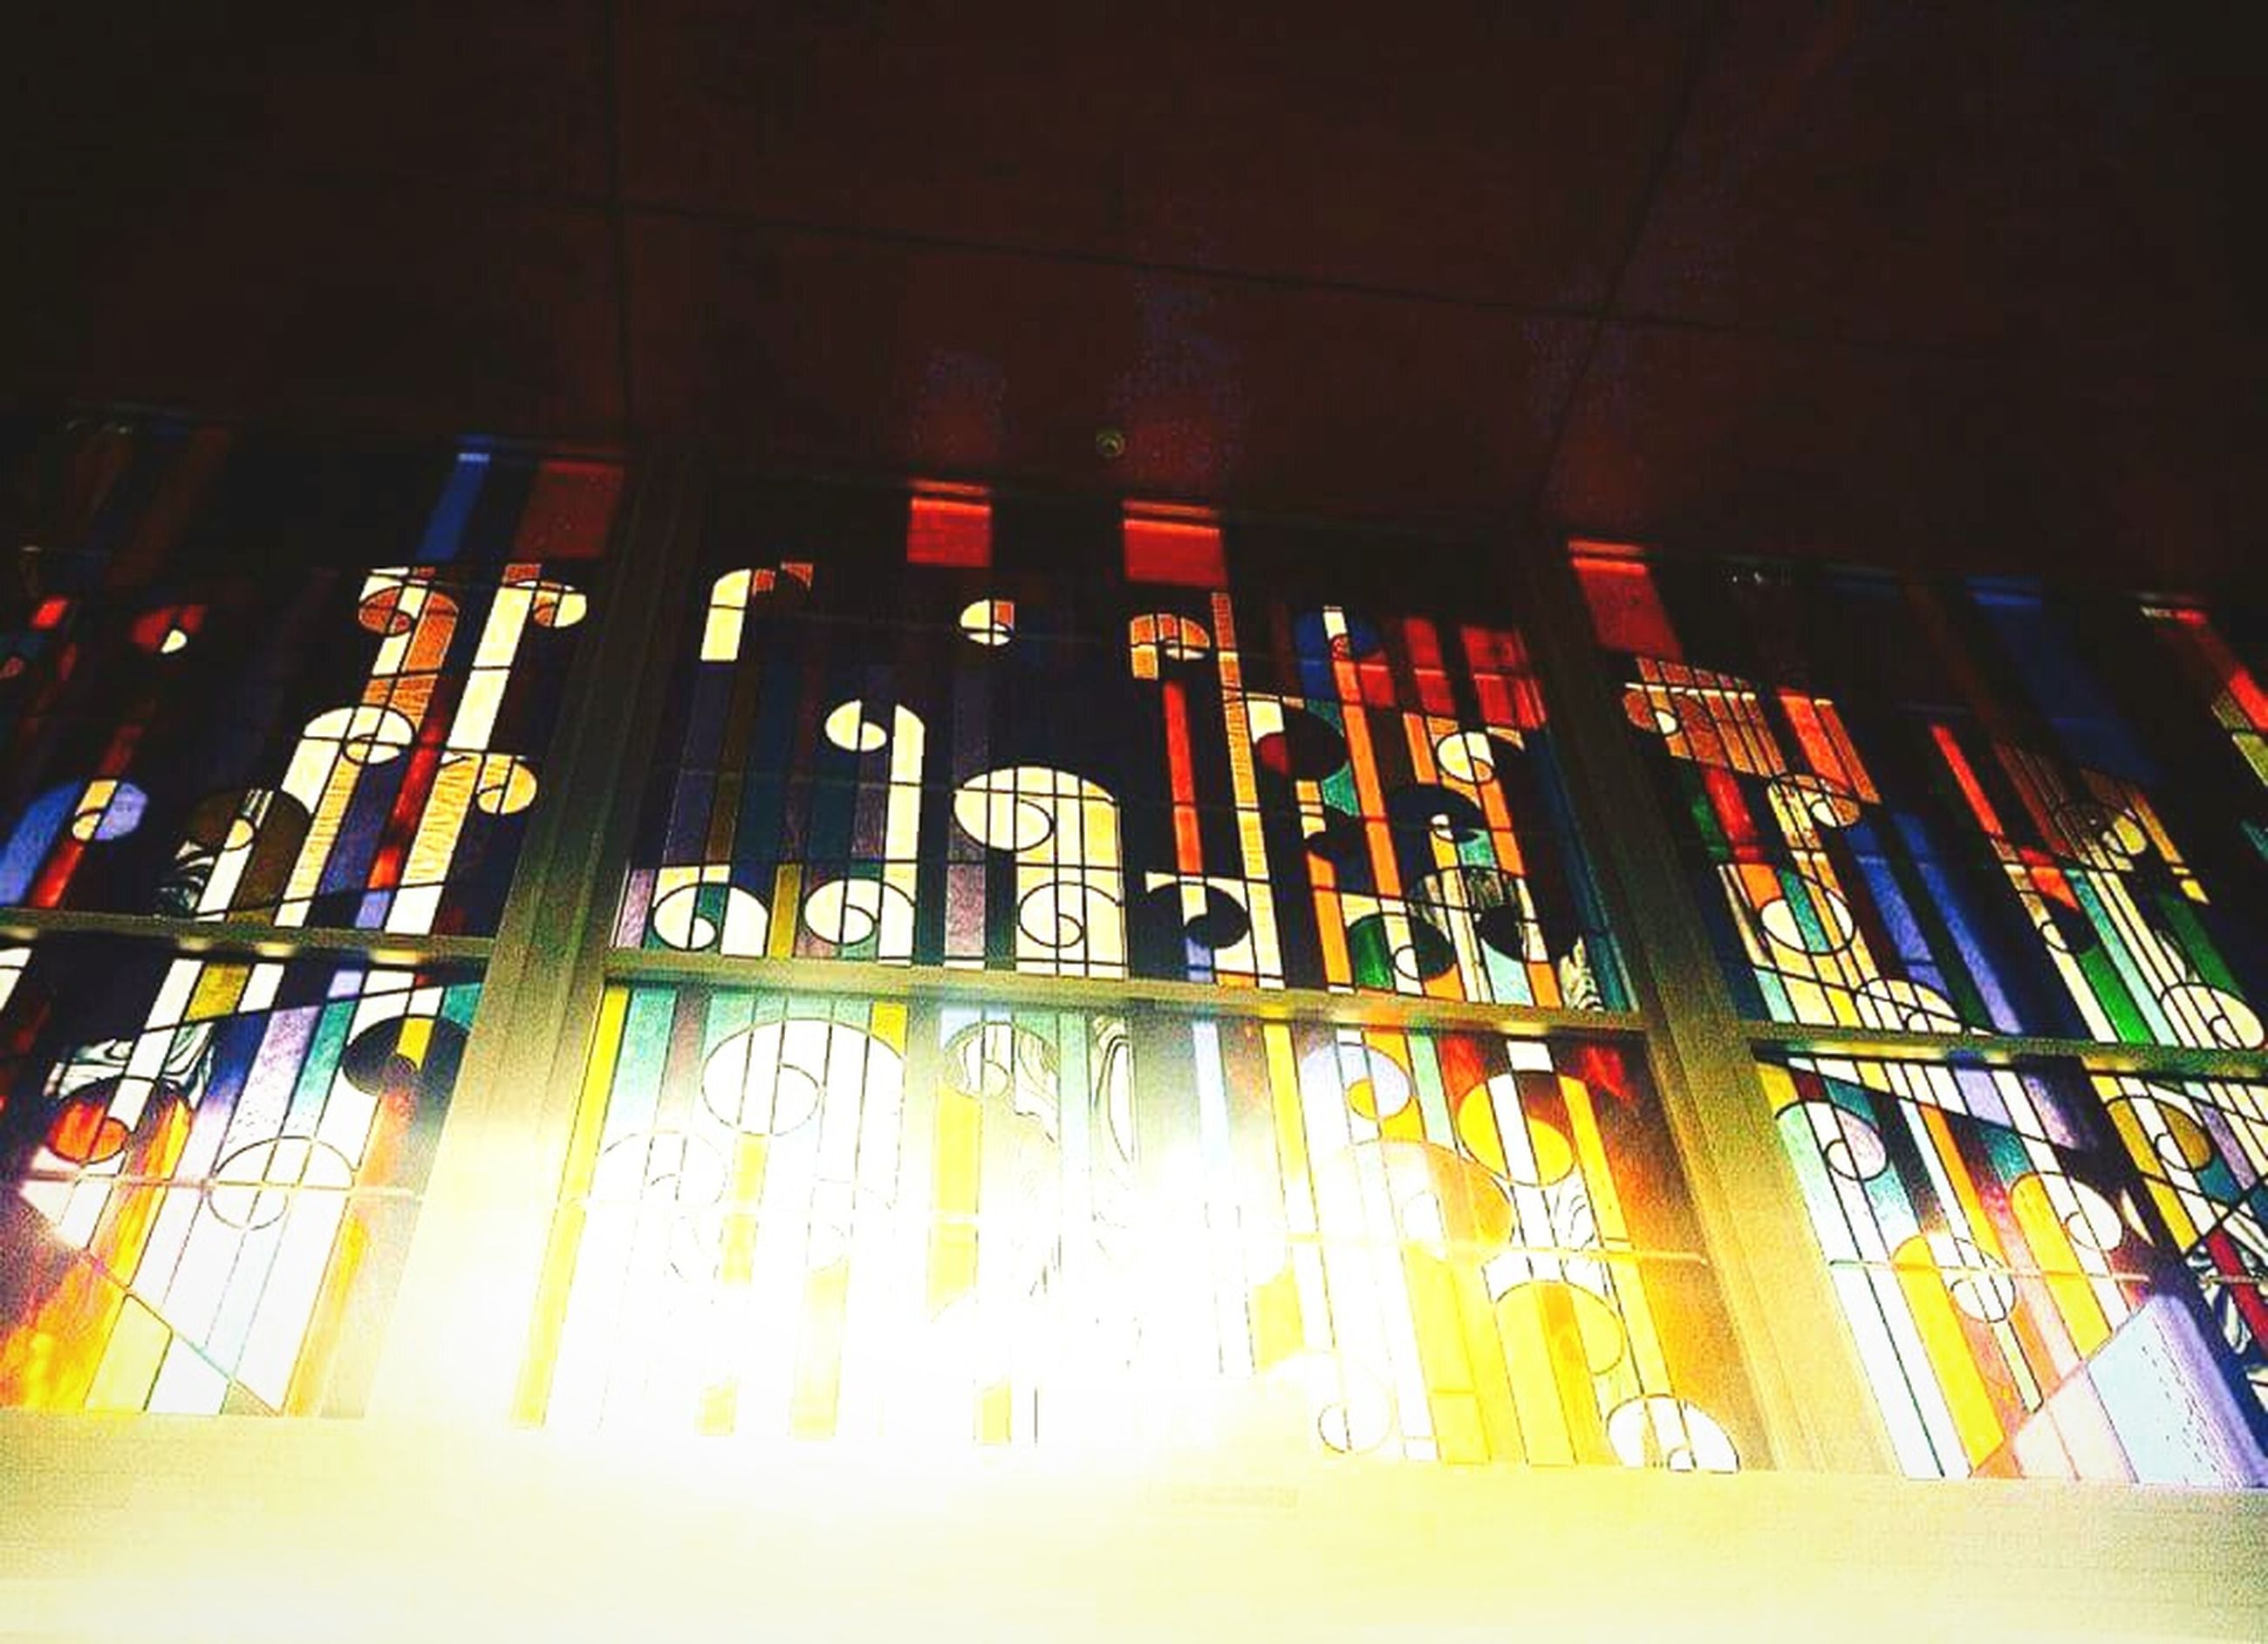 low angle view, architecture, indoors, built structure, in a row, hanging, illuminated, religion, place of worship, spirituality, side by side, repetition, no people, large group of objects, building exterior, order, multi colored, decoration, architectural column, temple - building